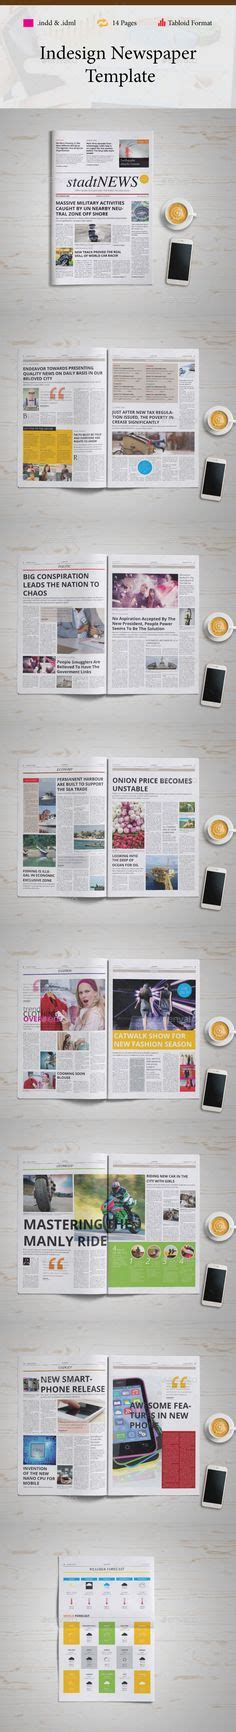 newspaper layout indd tabloid indesign newspaper templates newspaper and design